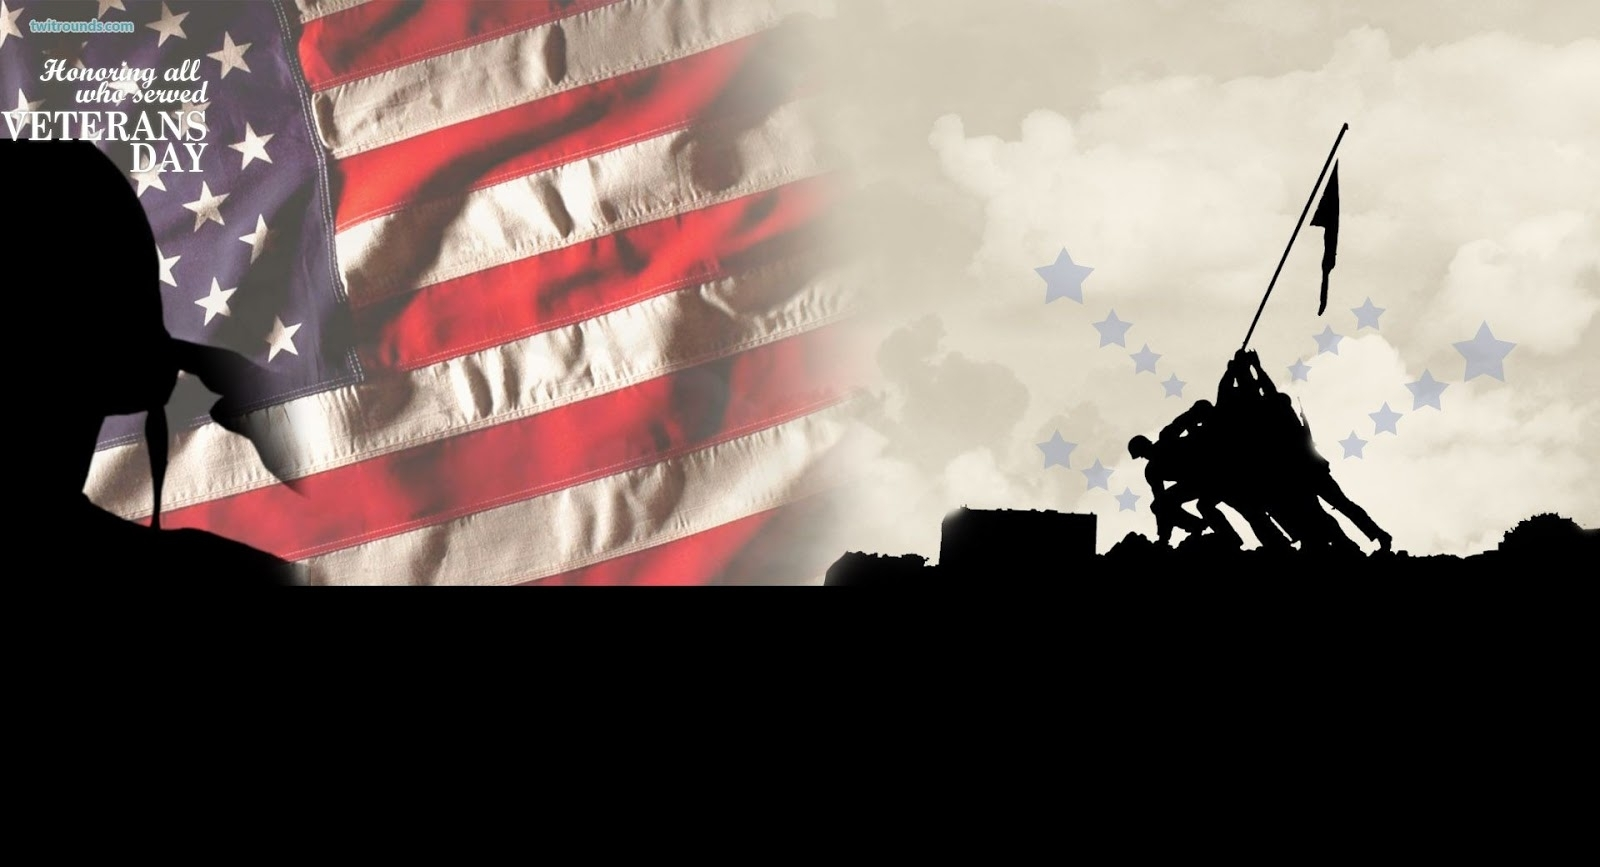 veterans day wallpaper 2017 free download | happy veterans day 2017